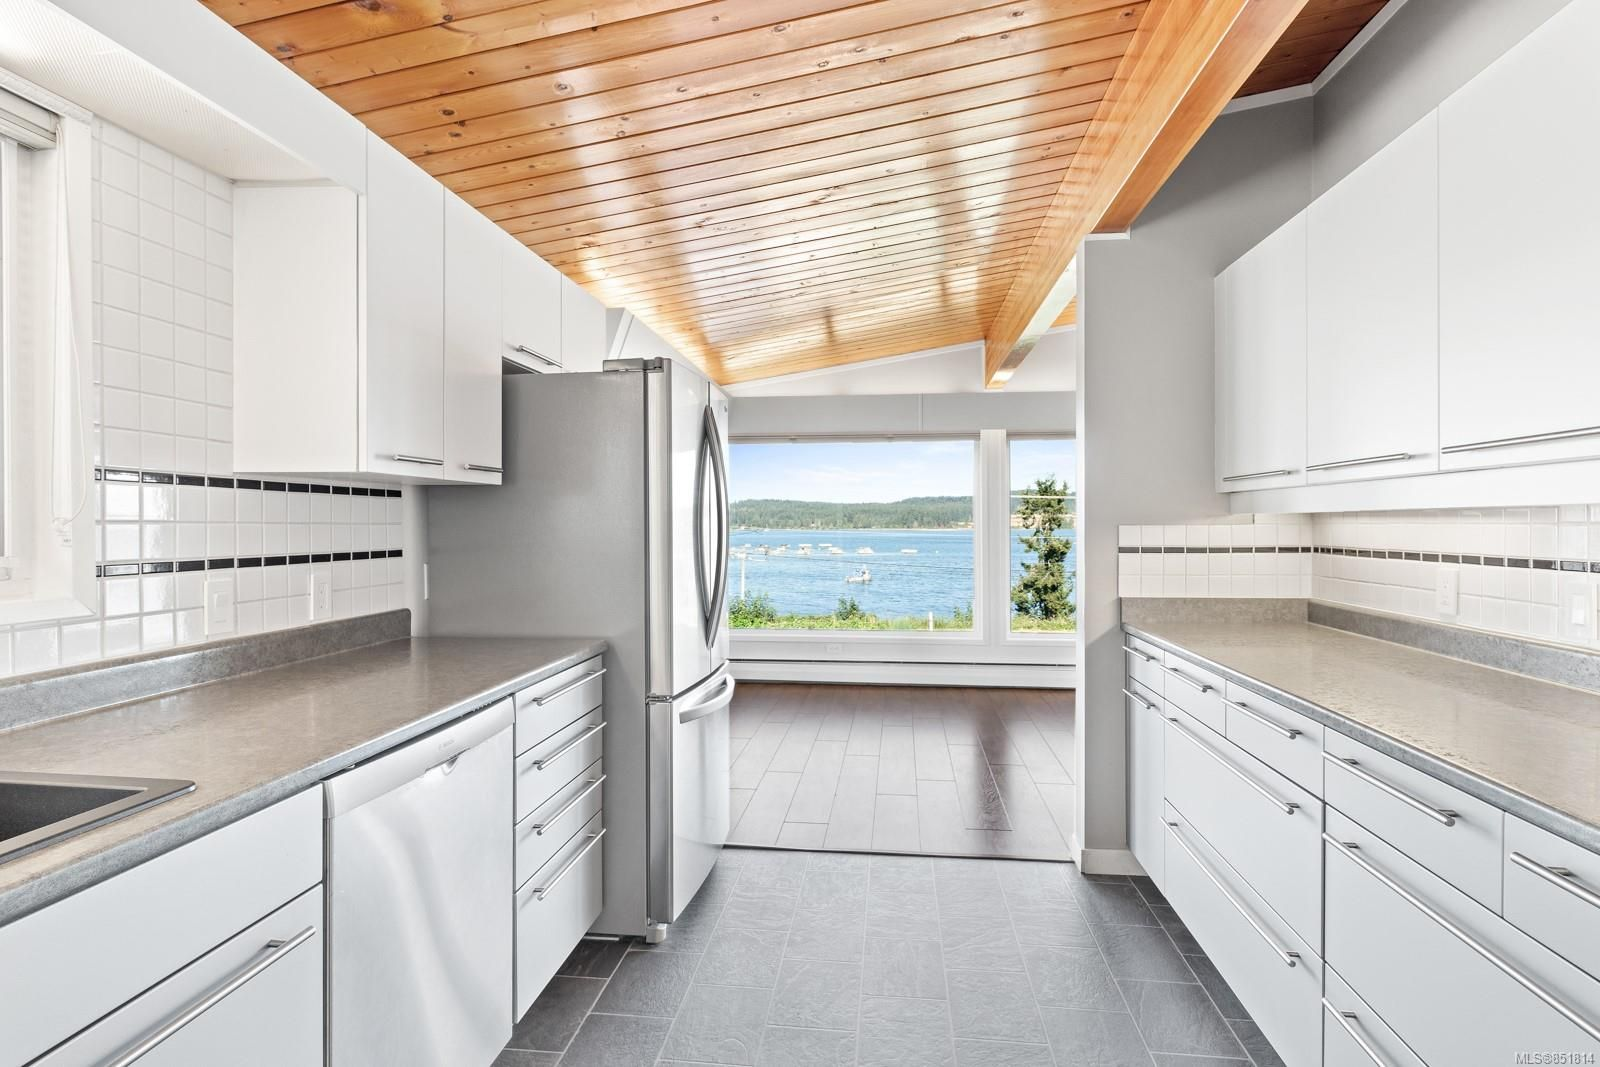 Photo 6: Photos: 191 Muschamp Rd in : CV Union Bay/Fanny Bay House for sale (Comox Valley)  : MLS®# 851814